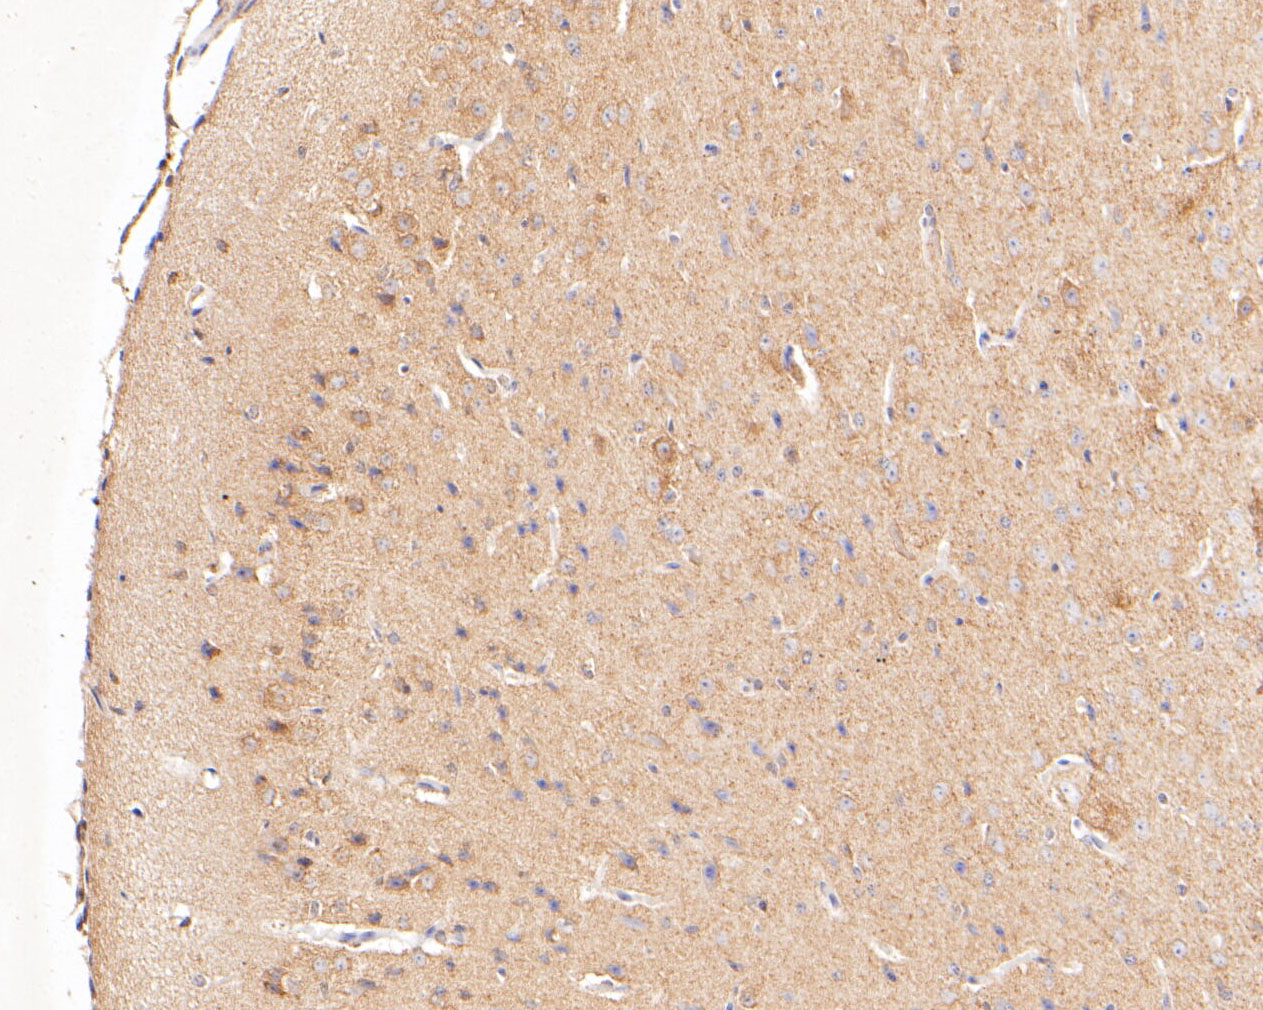 Immunohistochemical analysis of paraffin-embedded mouse brain tissue using anti-PYCR1 antibody. The section was pre-treated using heat mediated antigen retrieval with Tris-EDTA buffer (pH 8.0-8.4) for 20 minutes.The tissues were blocked in 5% BSA for 30 minutes at room temperature, washed with ddH2O and PBS, and then probed with the primary antibody (ER1902-94, 1/400) for 30 minutes at room temperature. The detection was performed using an HRP conjugated compact polymer system. DAB was used as the chromogen. Tissues were counterstained with hematoxylin and mounted with DPX.